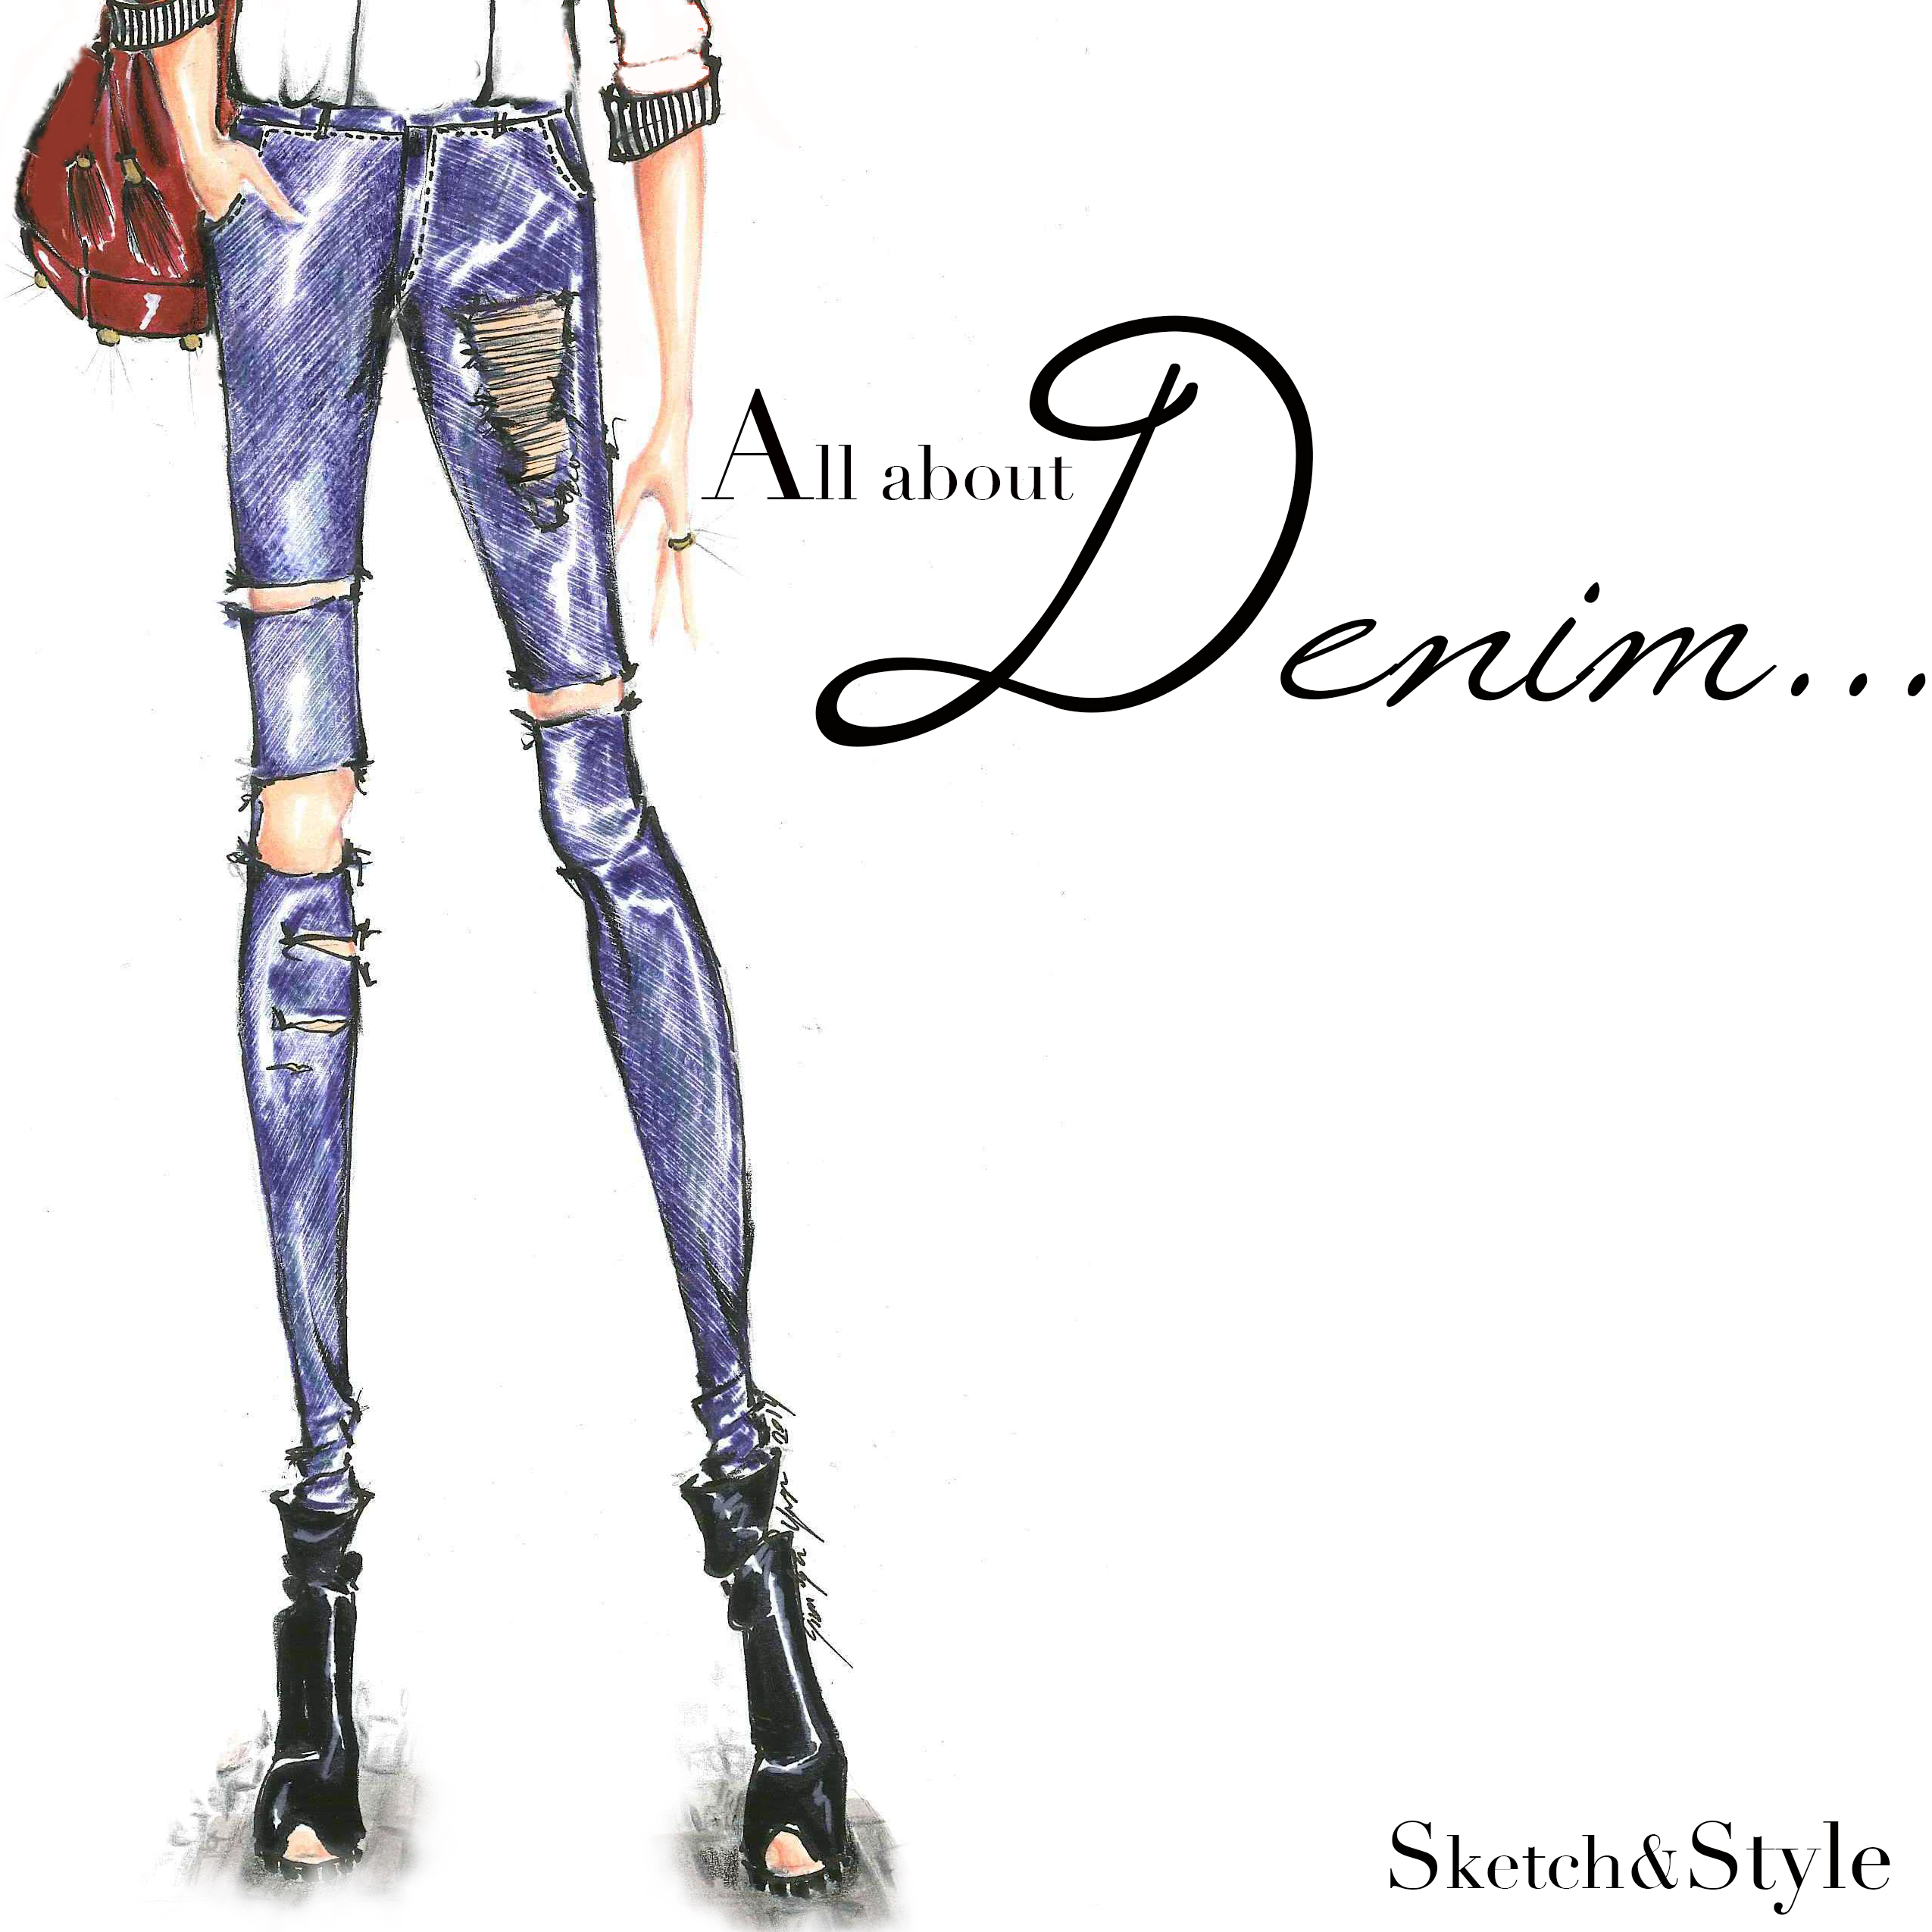 """All about Denim"" Illustration by Sketch&Style"